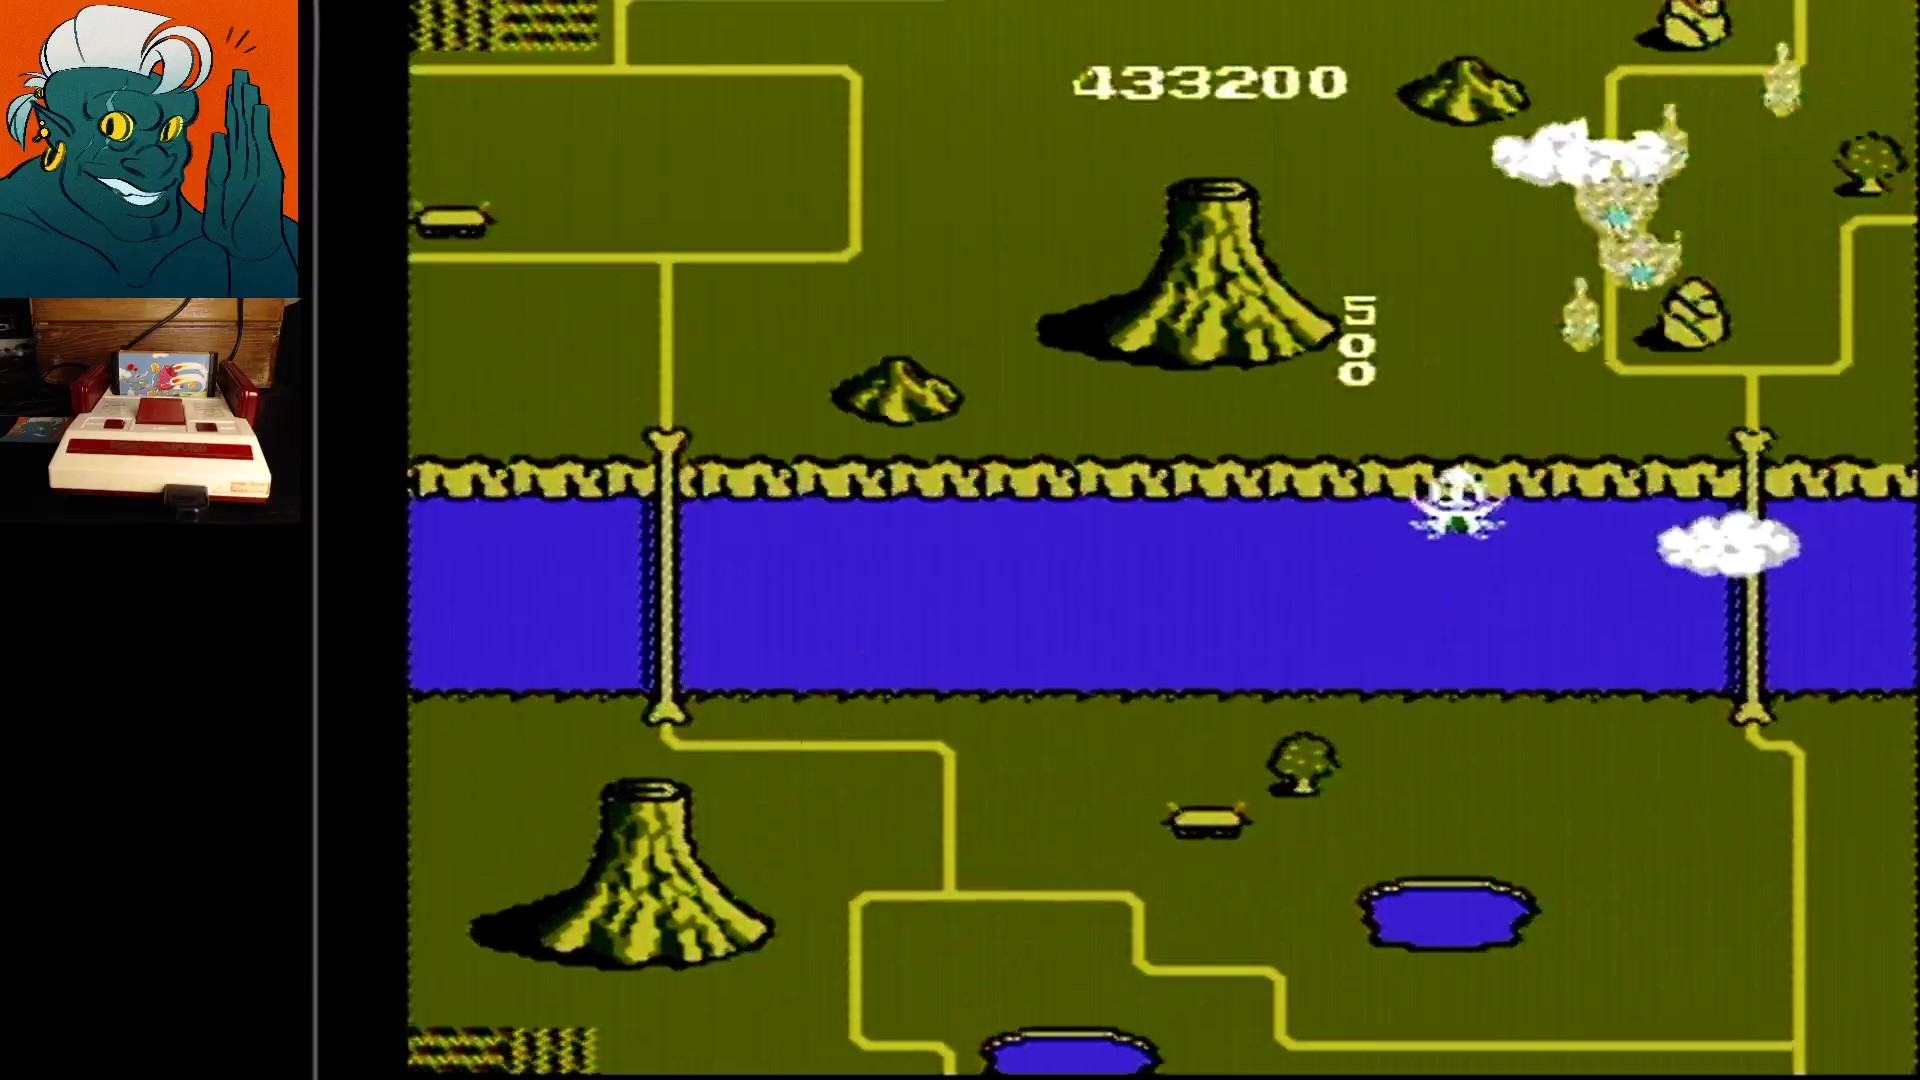 AwesomeOgre: TwinBee [1 Life] (NES/Famicom) 433,200 points on 2019-11-11 06:48:19